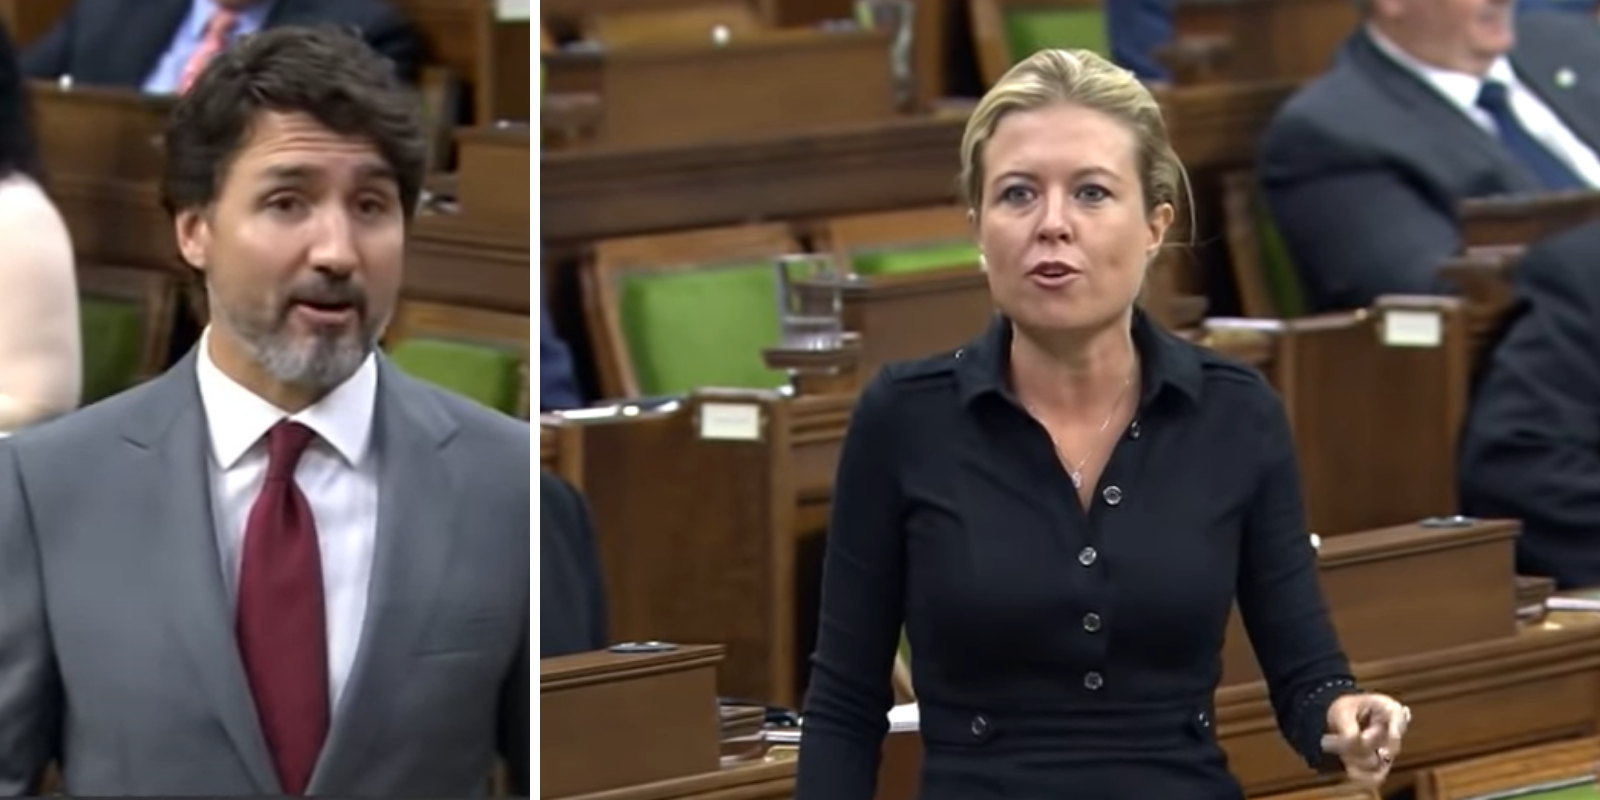 Rempel Garner blasts Trudeau Liberals over 'outrageous cover-up tactics' for refusal to release COVID-19 documents